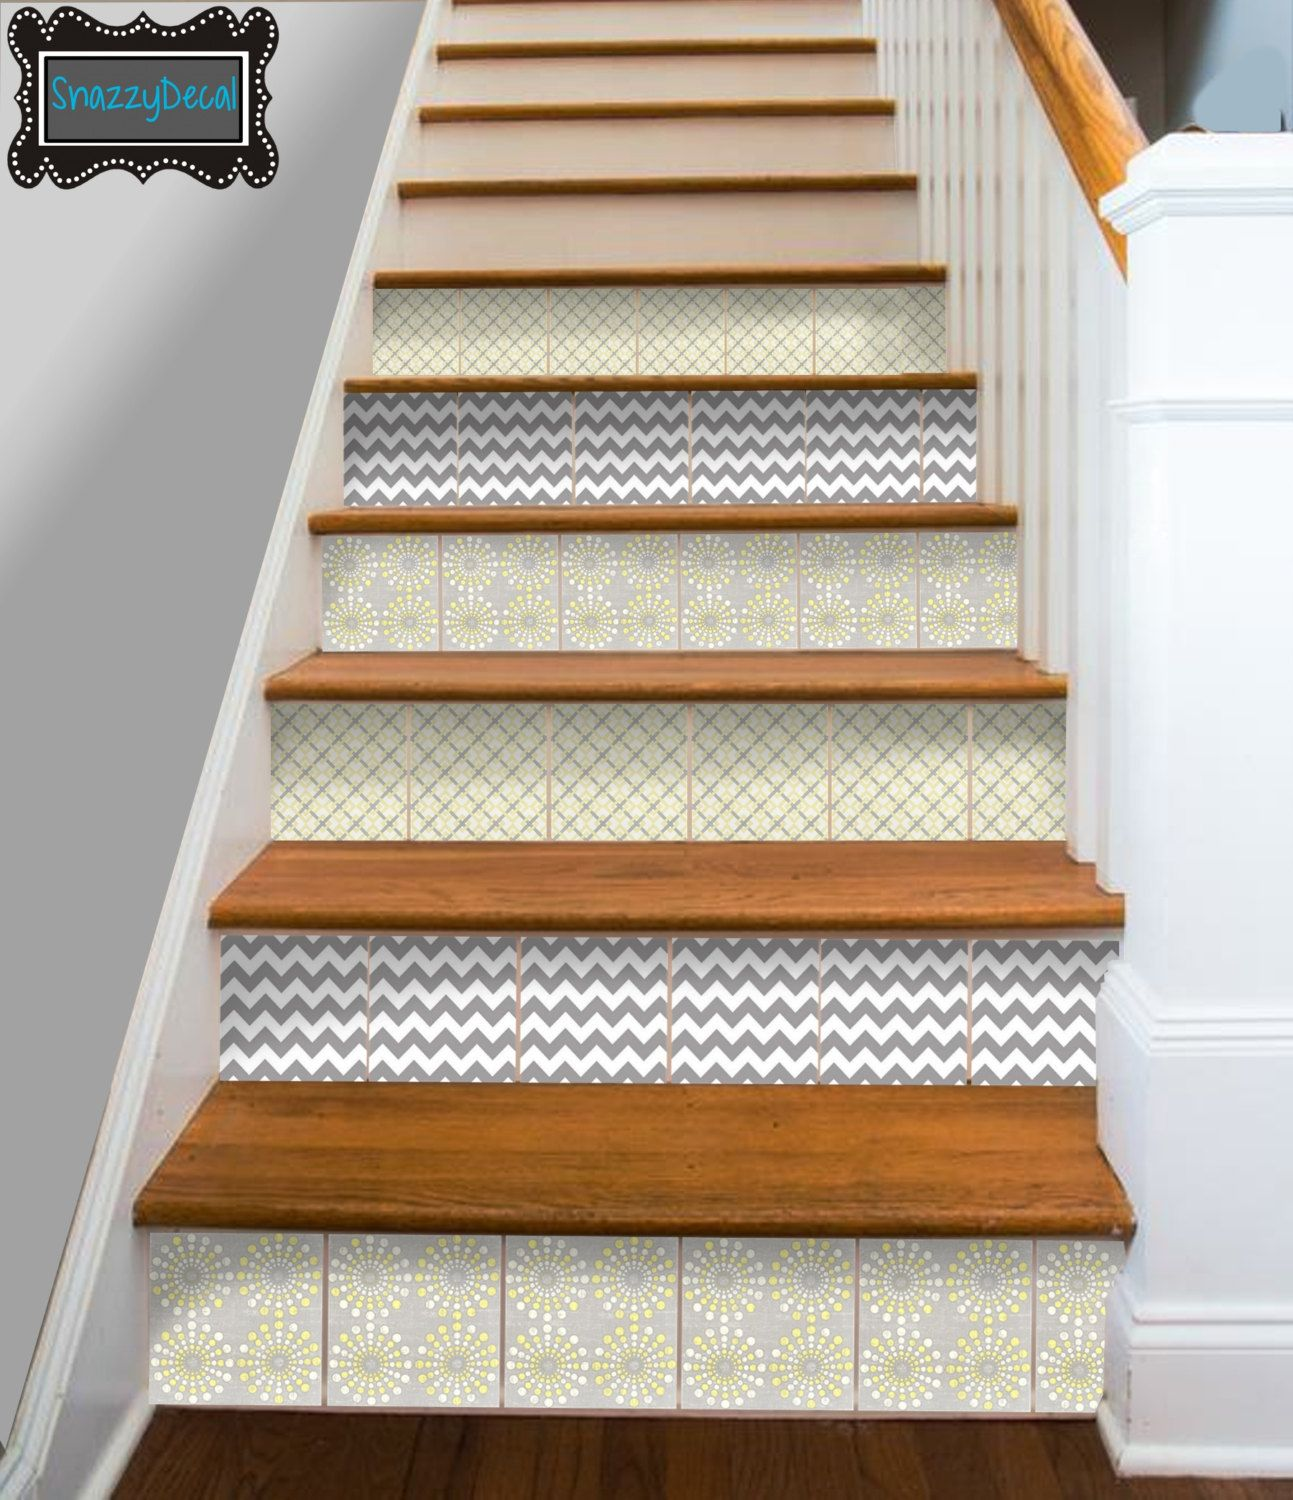 Kitchen Bathroom Wall Stair Riser Tile Decals Vinyl Sticker :  Yellow/grey mix Fmix5 (14.95 USD) by SnazzyDecals